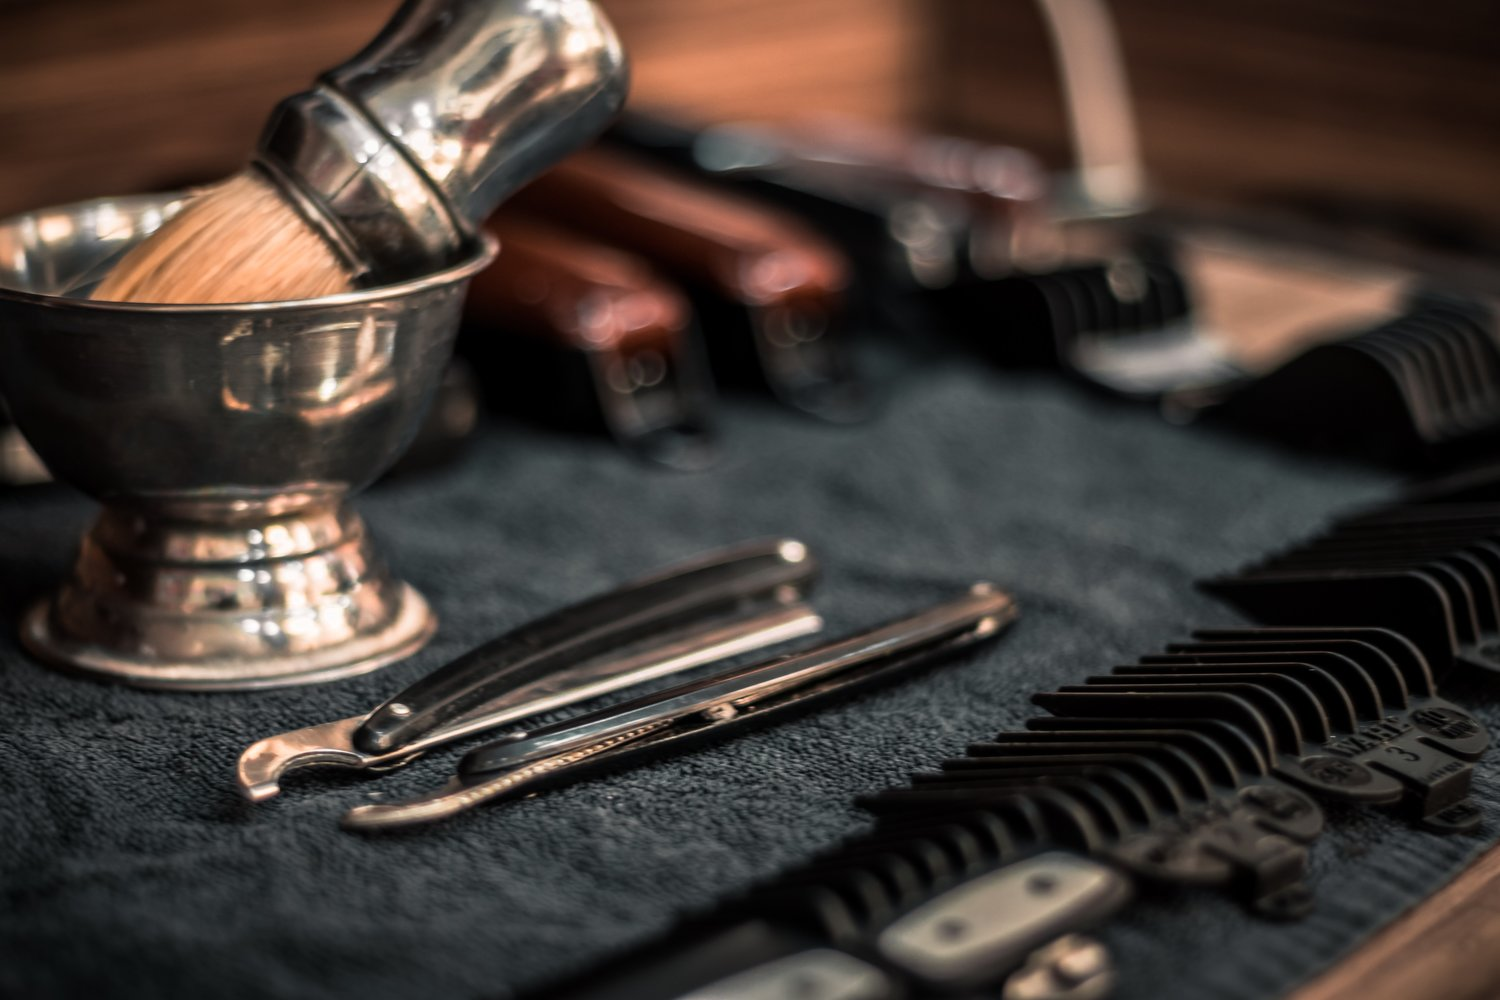 East 50 Barbershop